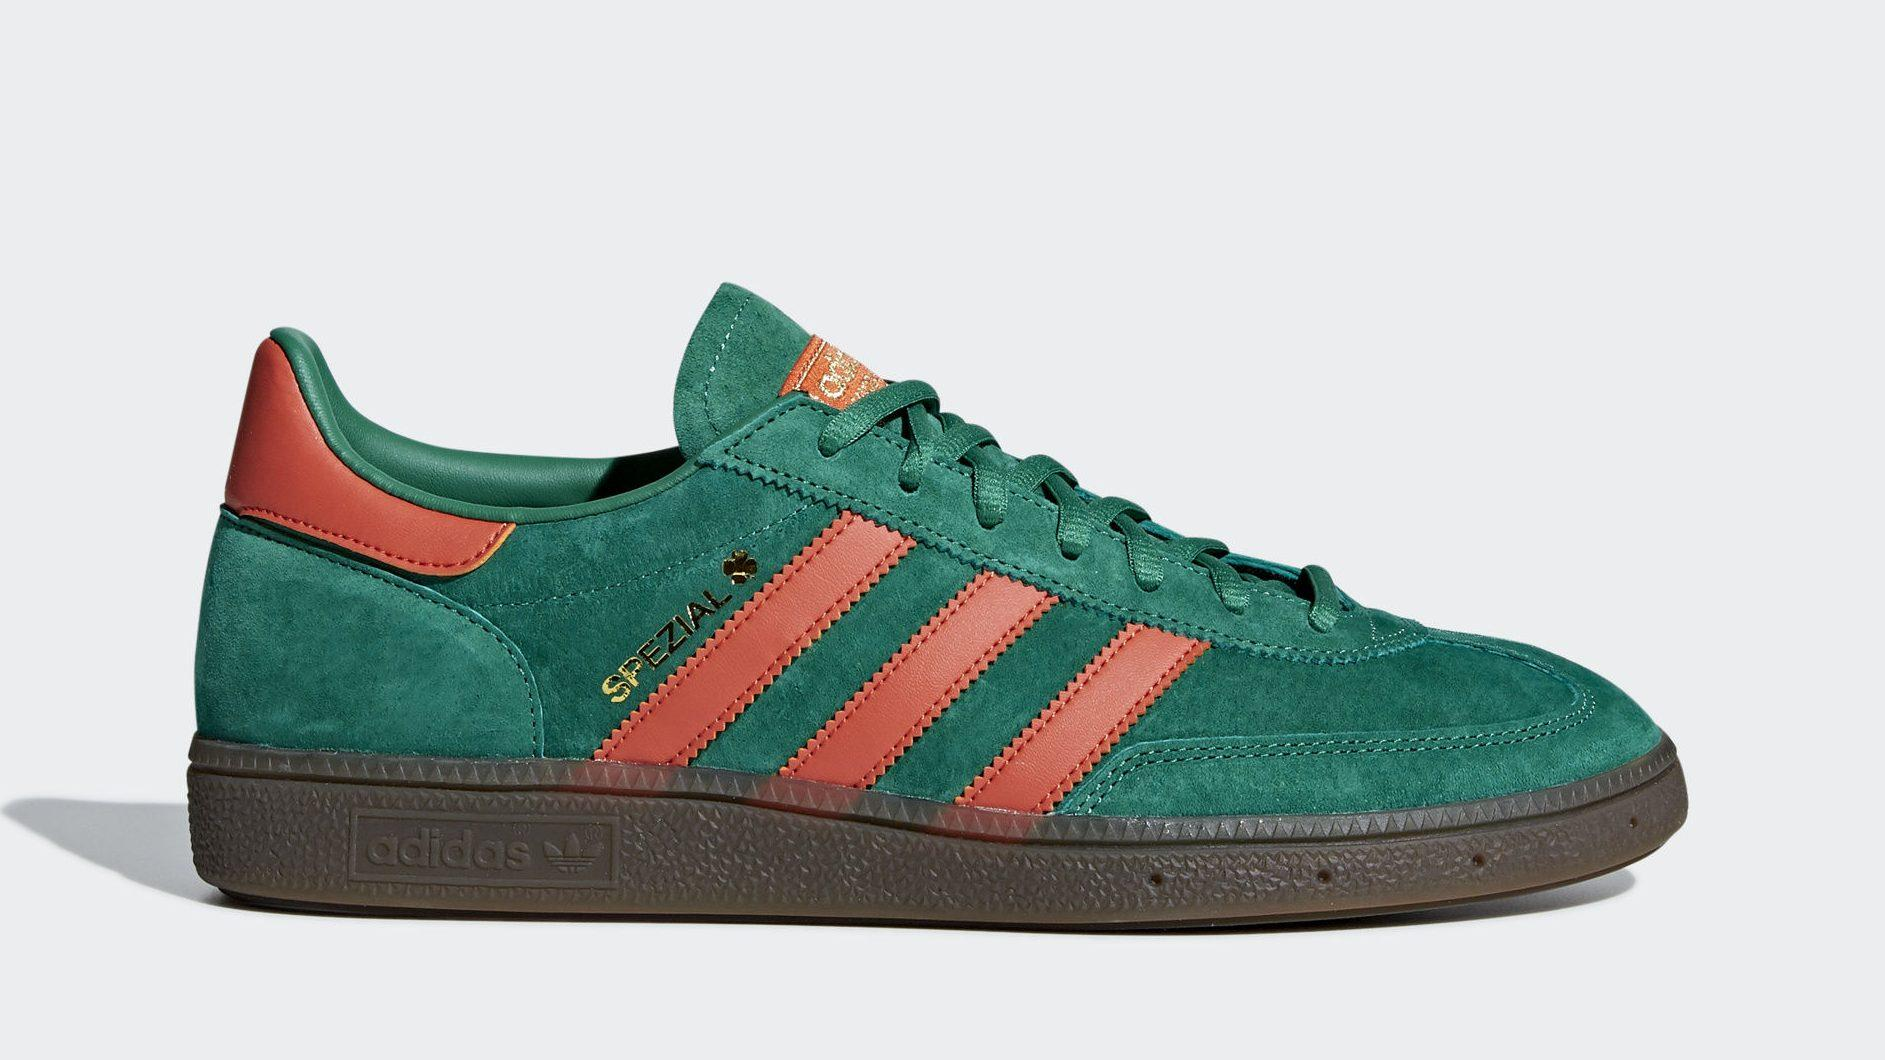 1fe19bc36adb4 Adidas Has  St. Patrick s Day  Vintage-Style Shoes That Will Bring You Good  Luck